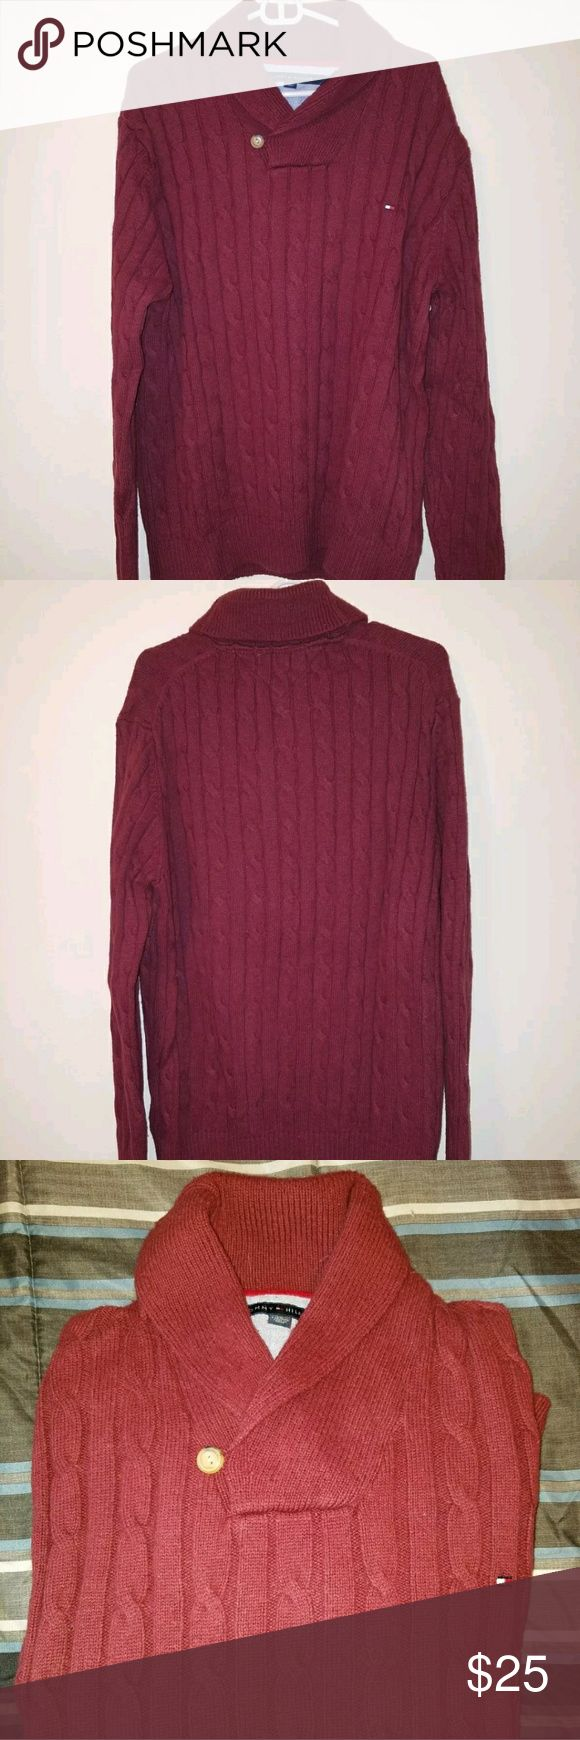 """🔥OVERNIGHT SALE 🔥Tommy Hilfiger Cable Knit Men's Tommy Hilfiger Cable Knit Shawl Collar Sweater Burgandy Size XXL  Armpit to Armpit: 24""""  Shoulders: 19.5  Top to Bottom: 32""""  Sweater is in excellent condition!  See pictures for best description!  Thanks for looking! Message me with any questions! Tommy Hilfiger Sweaters V-Neck"""